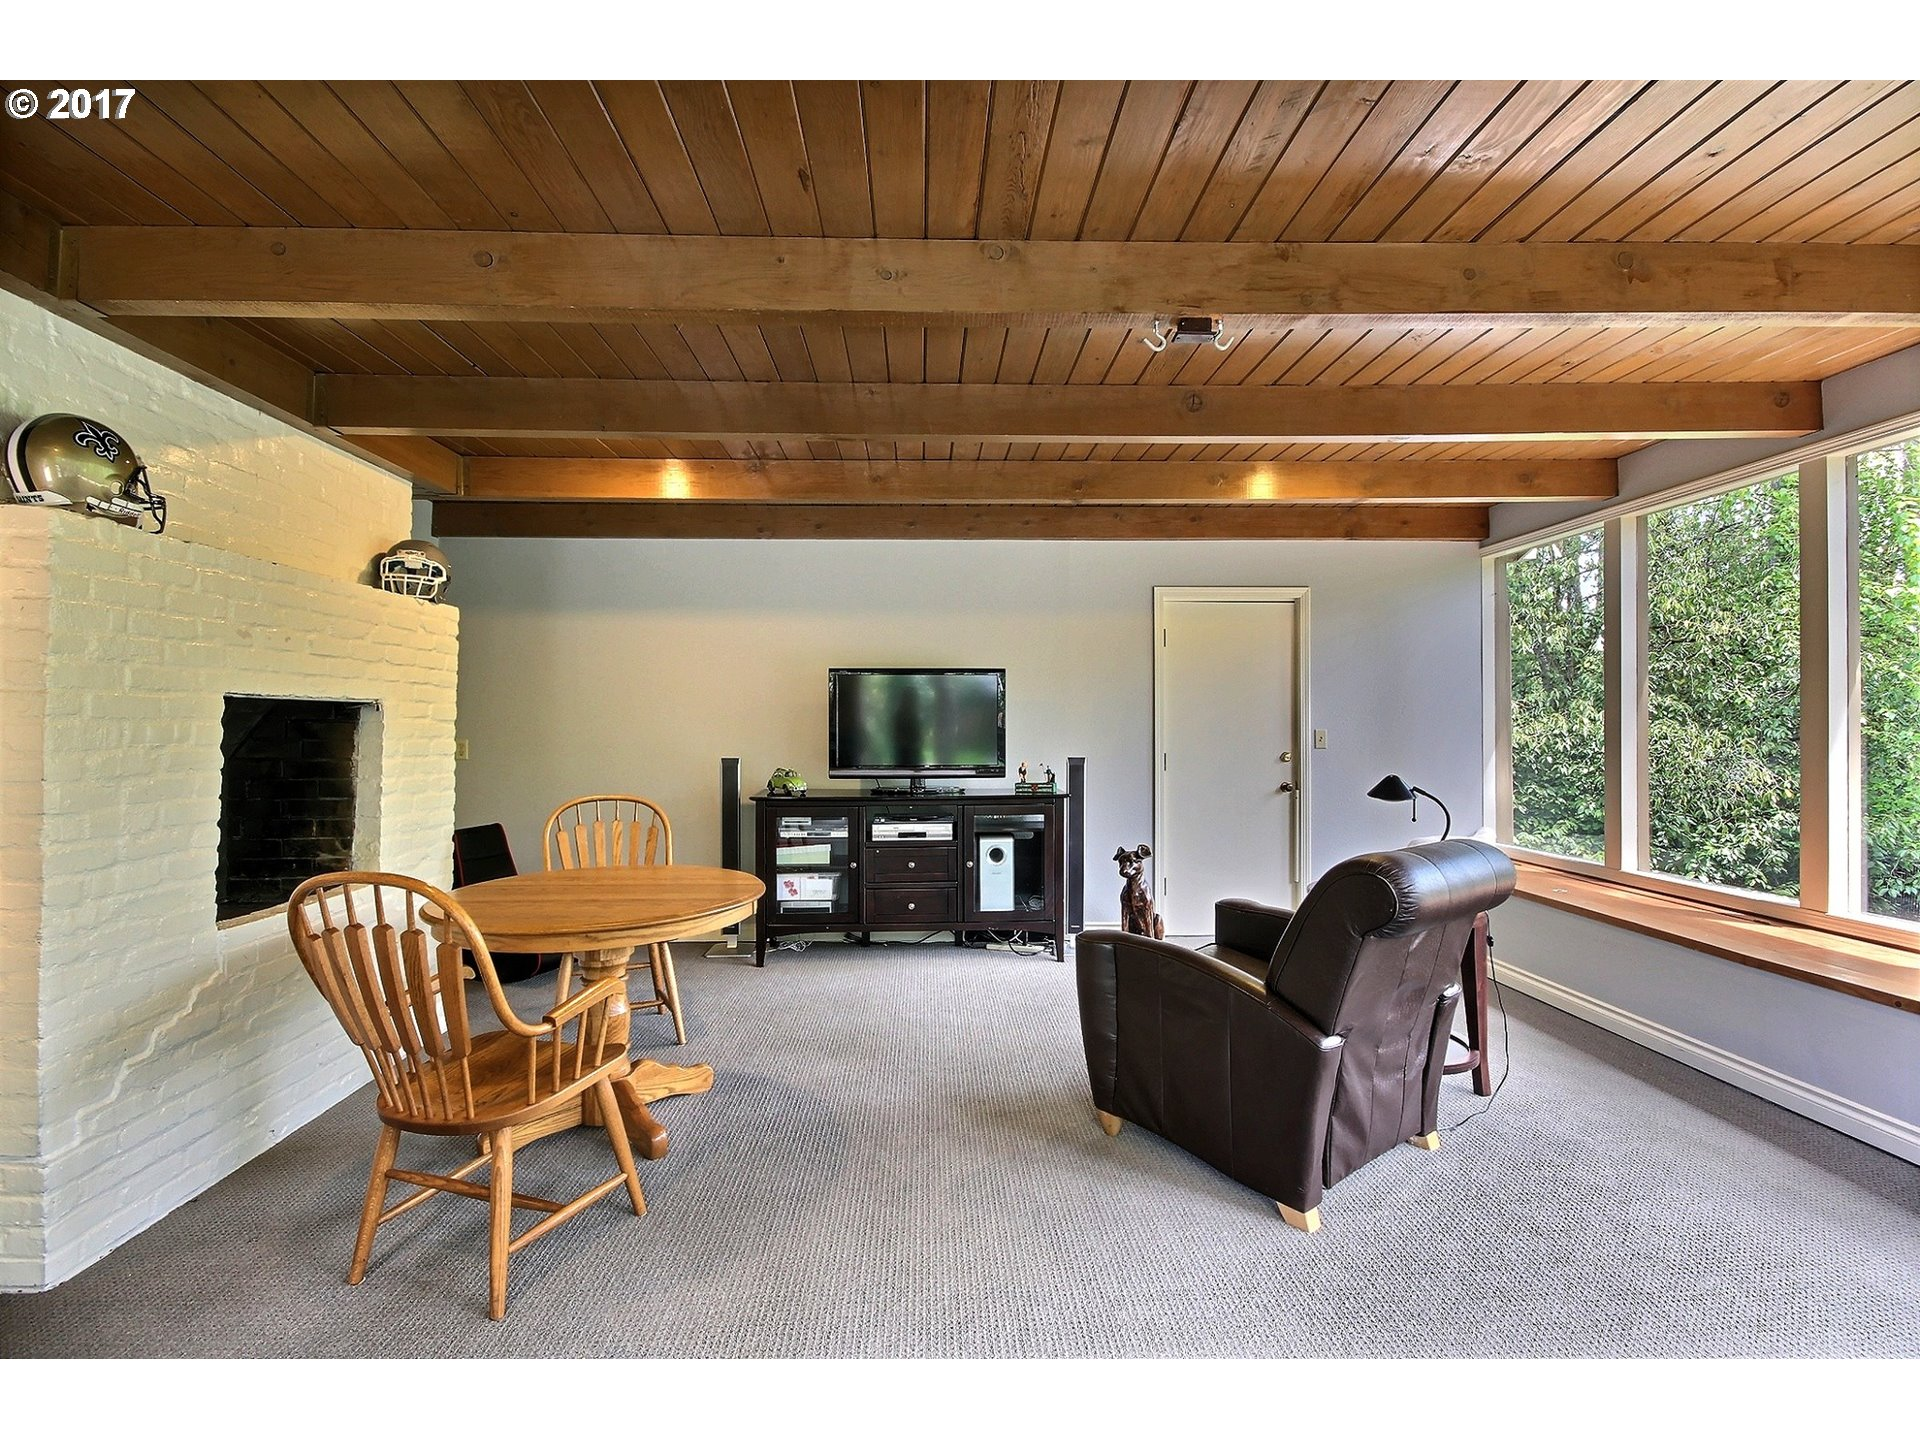 2475 GLENMORRIE DR Lake Oswego, OR 97034 - MLS #: 17006522